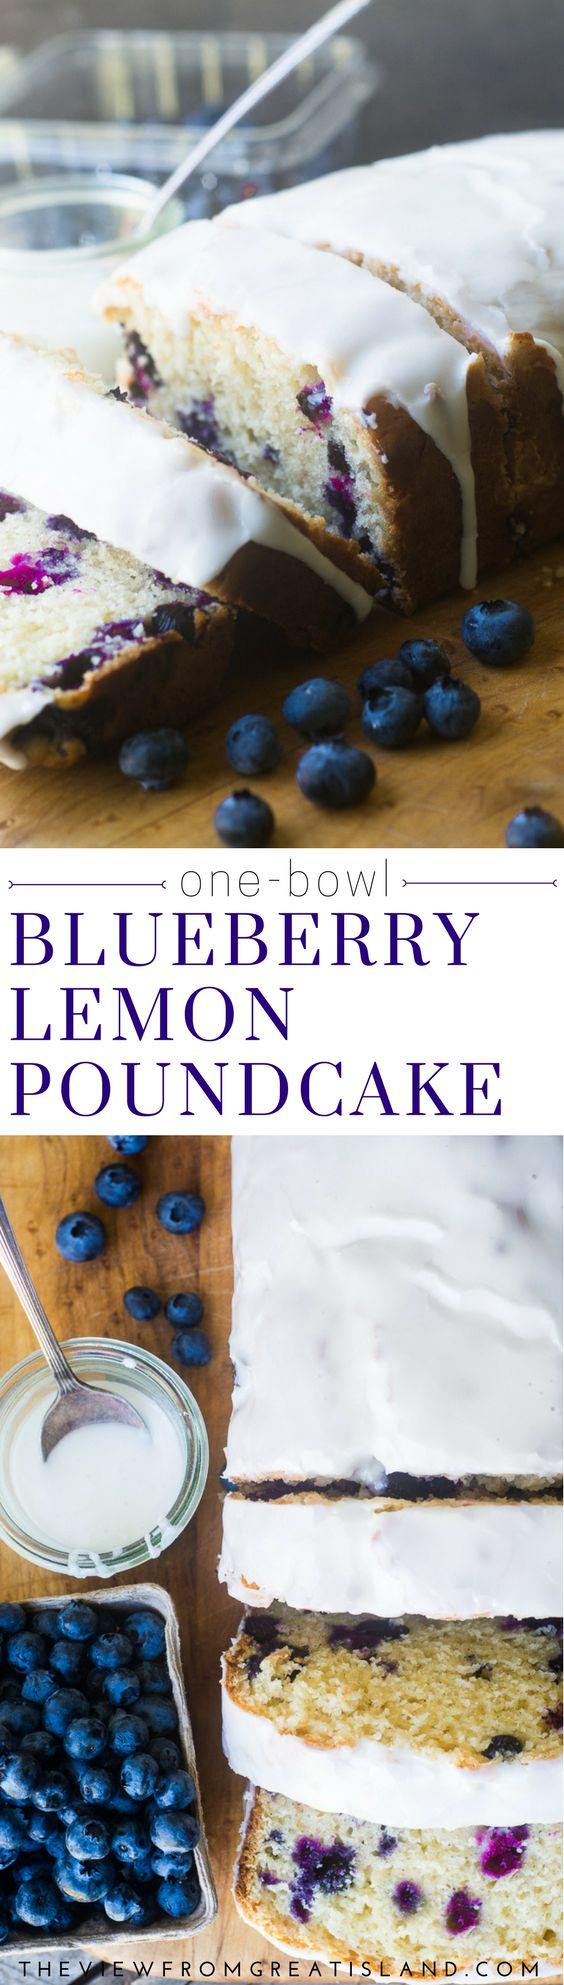 Blueberry Lemon Pound Cake is a quick and easy one bowl recipe that showcases one of my favorite flavor combinations for spring and summer! #blueberry #lemon #poundcake #dessert #brunch #quickbread #cake #poundcakerecipe #breakfast  via @https://www.pinterest.com/slmoran21/